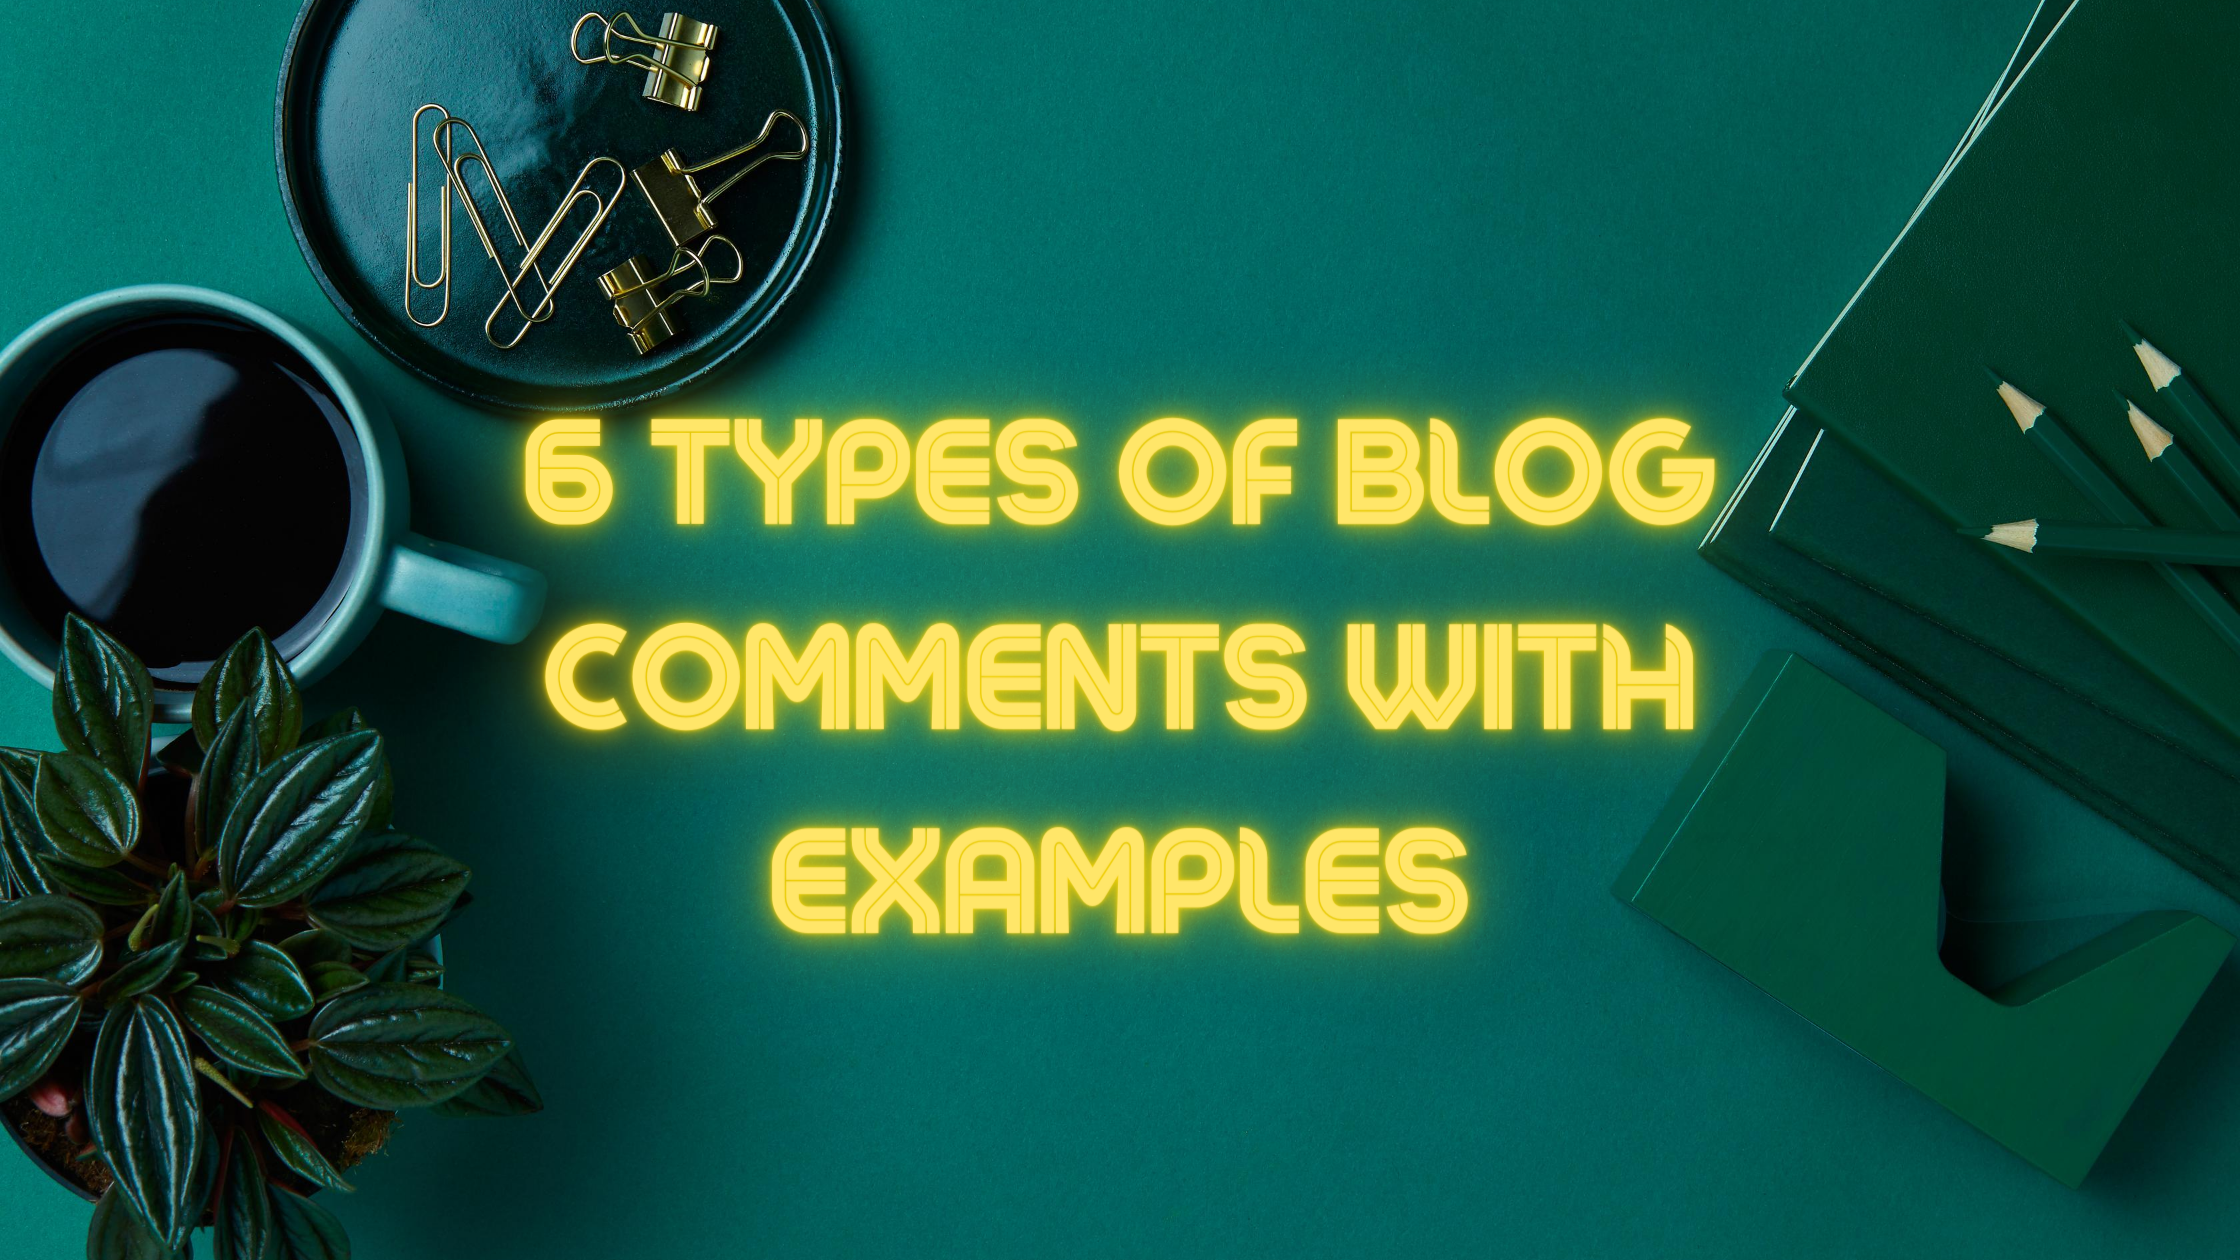 6 Types of Blog Comments with Examples